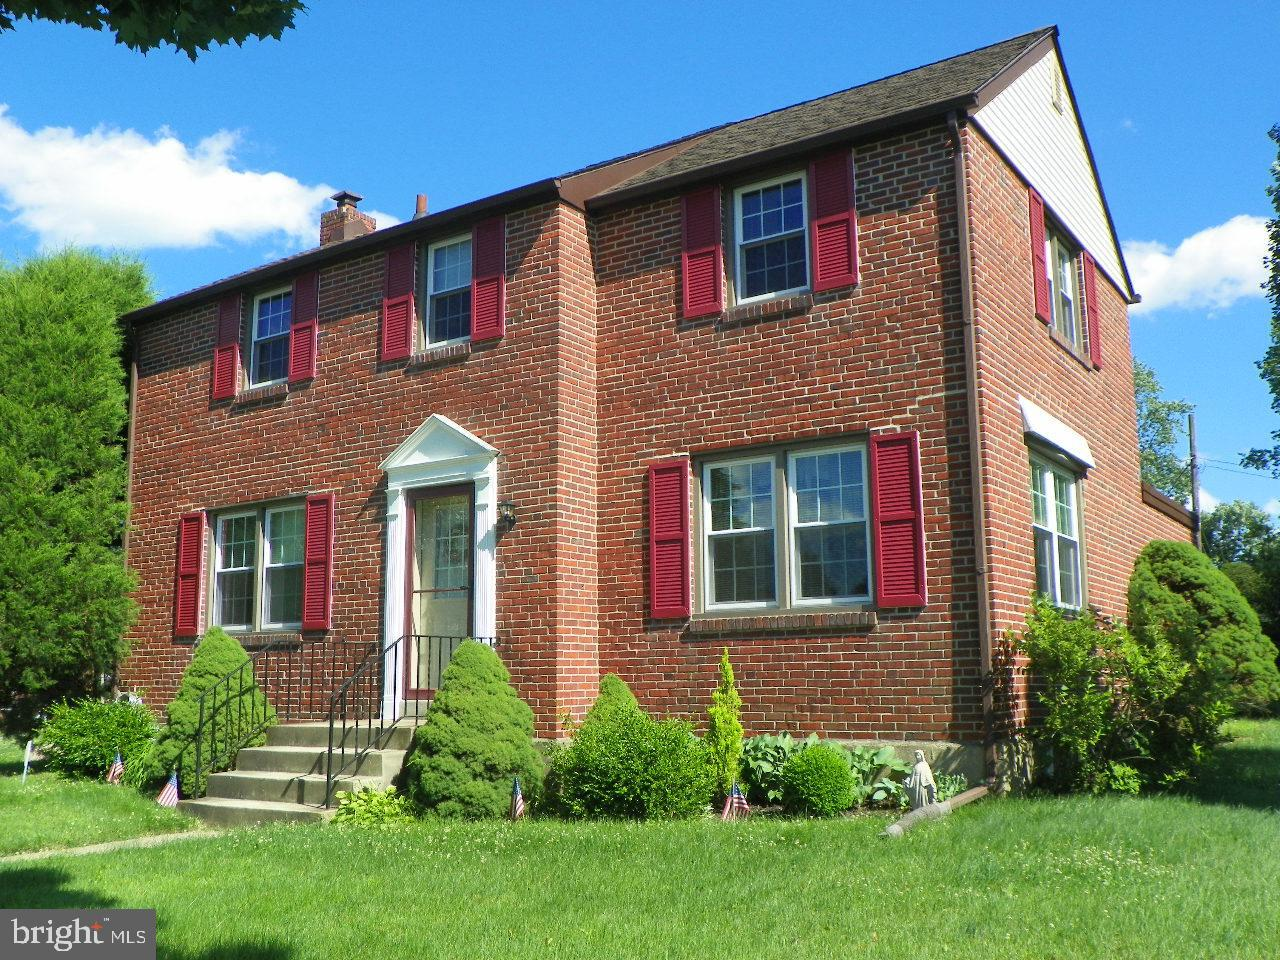 Hurry to see this move in condition all brick colonial home on a beautiful corner lot located in sought after Springfield Twp Delaware County. Featuring gleaming hardwoods, newer 5 burner gas range and convection oven, energy efficient double hung replacement windows, Trane gas heat & central air (2015), 40 gal gas hot water heater (2018), 3 spacious bedrooms with hardwood flooring & ceiling fans, full basement for all our storage needs, rear patio and good yard space to enjoy summer fun and relaxation. Located in the award winning Springfield School District, convenient to grocery & convenience stores and a wide variety of shopping and dining experiences. Just minutes to Rt 476, within 30 minutes to Philadelphia. Your going to love living here. Take a look then take action.